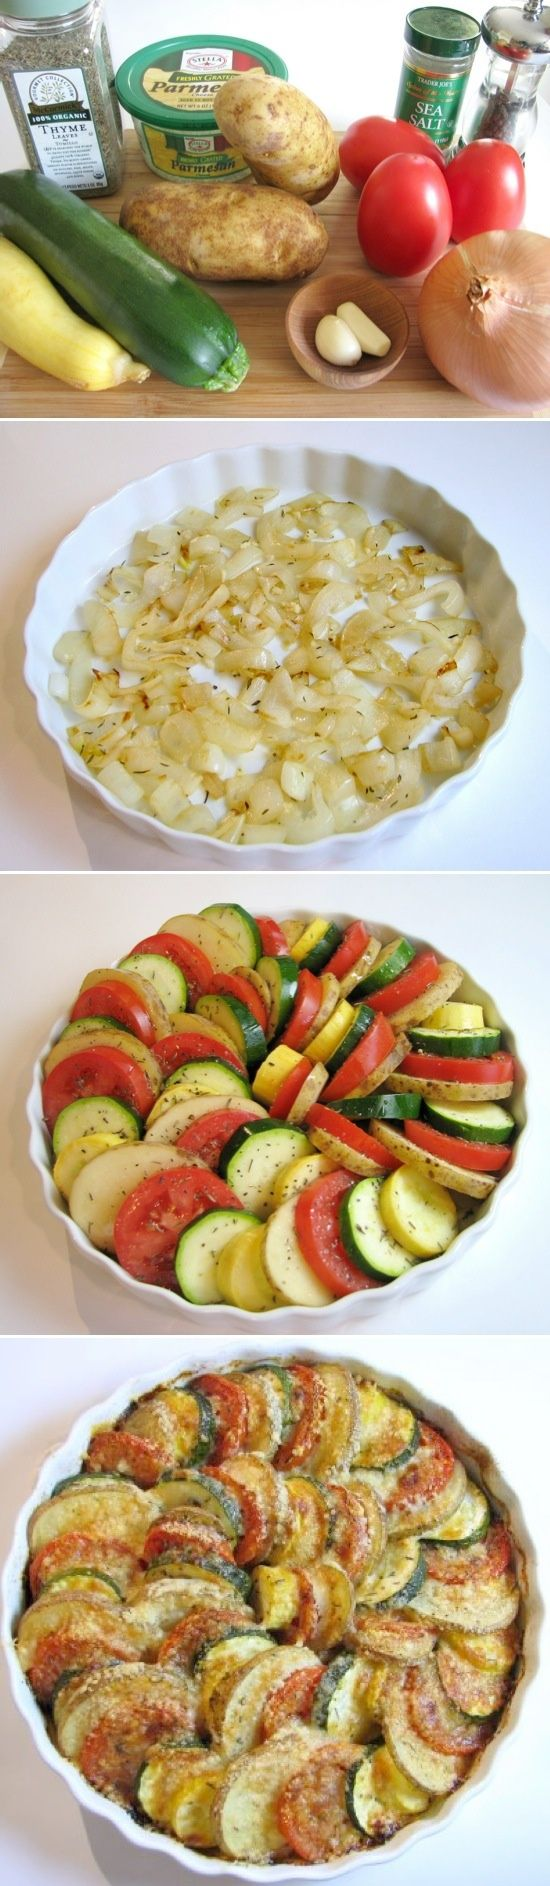 Bed of onions is topped by a medley of veggies (tomatoes, squash, potato & zucchini) then drizzled with olive oil sprinkled with Parmesan cheese & roasted.